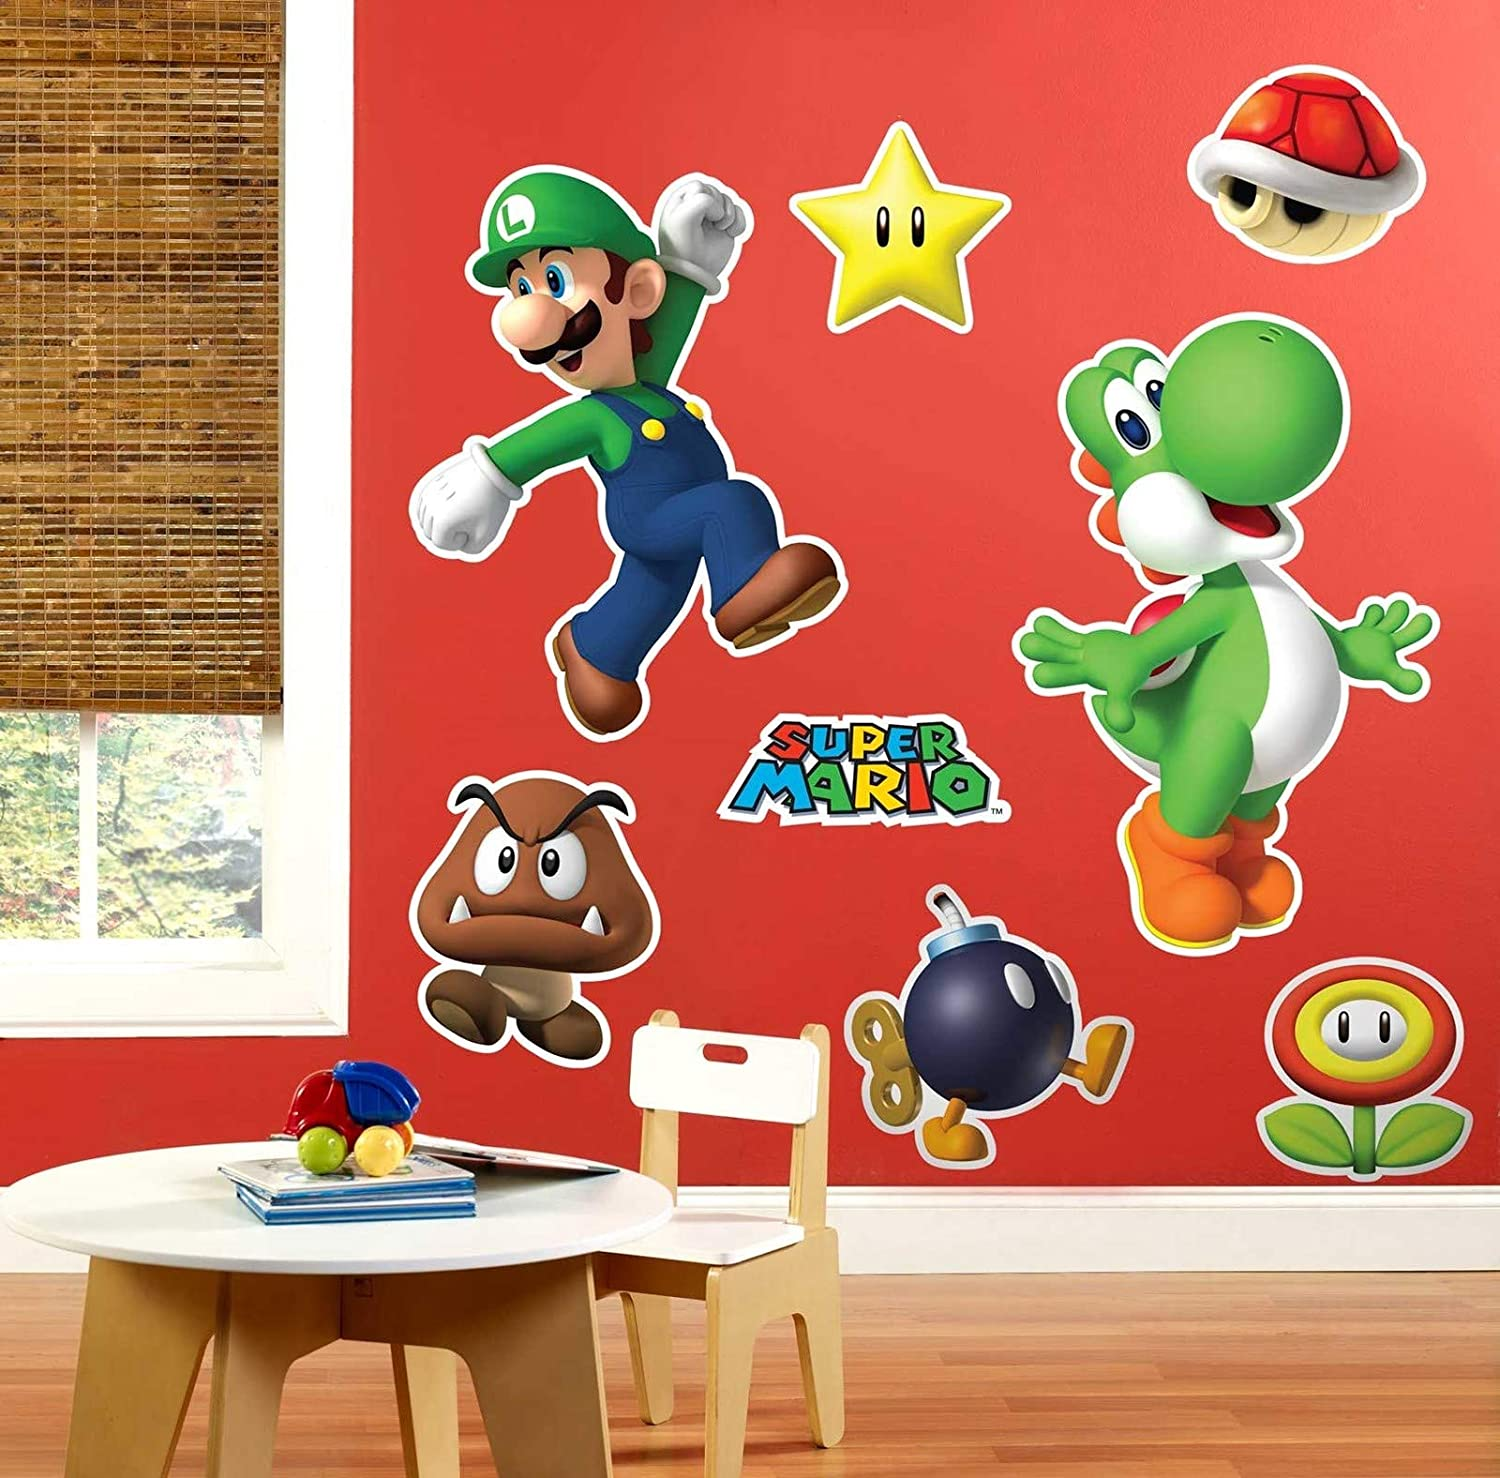 Cumpleaños Express - Super Mario Party gigante para pared ...